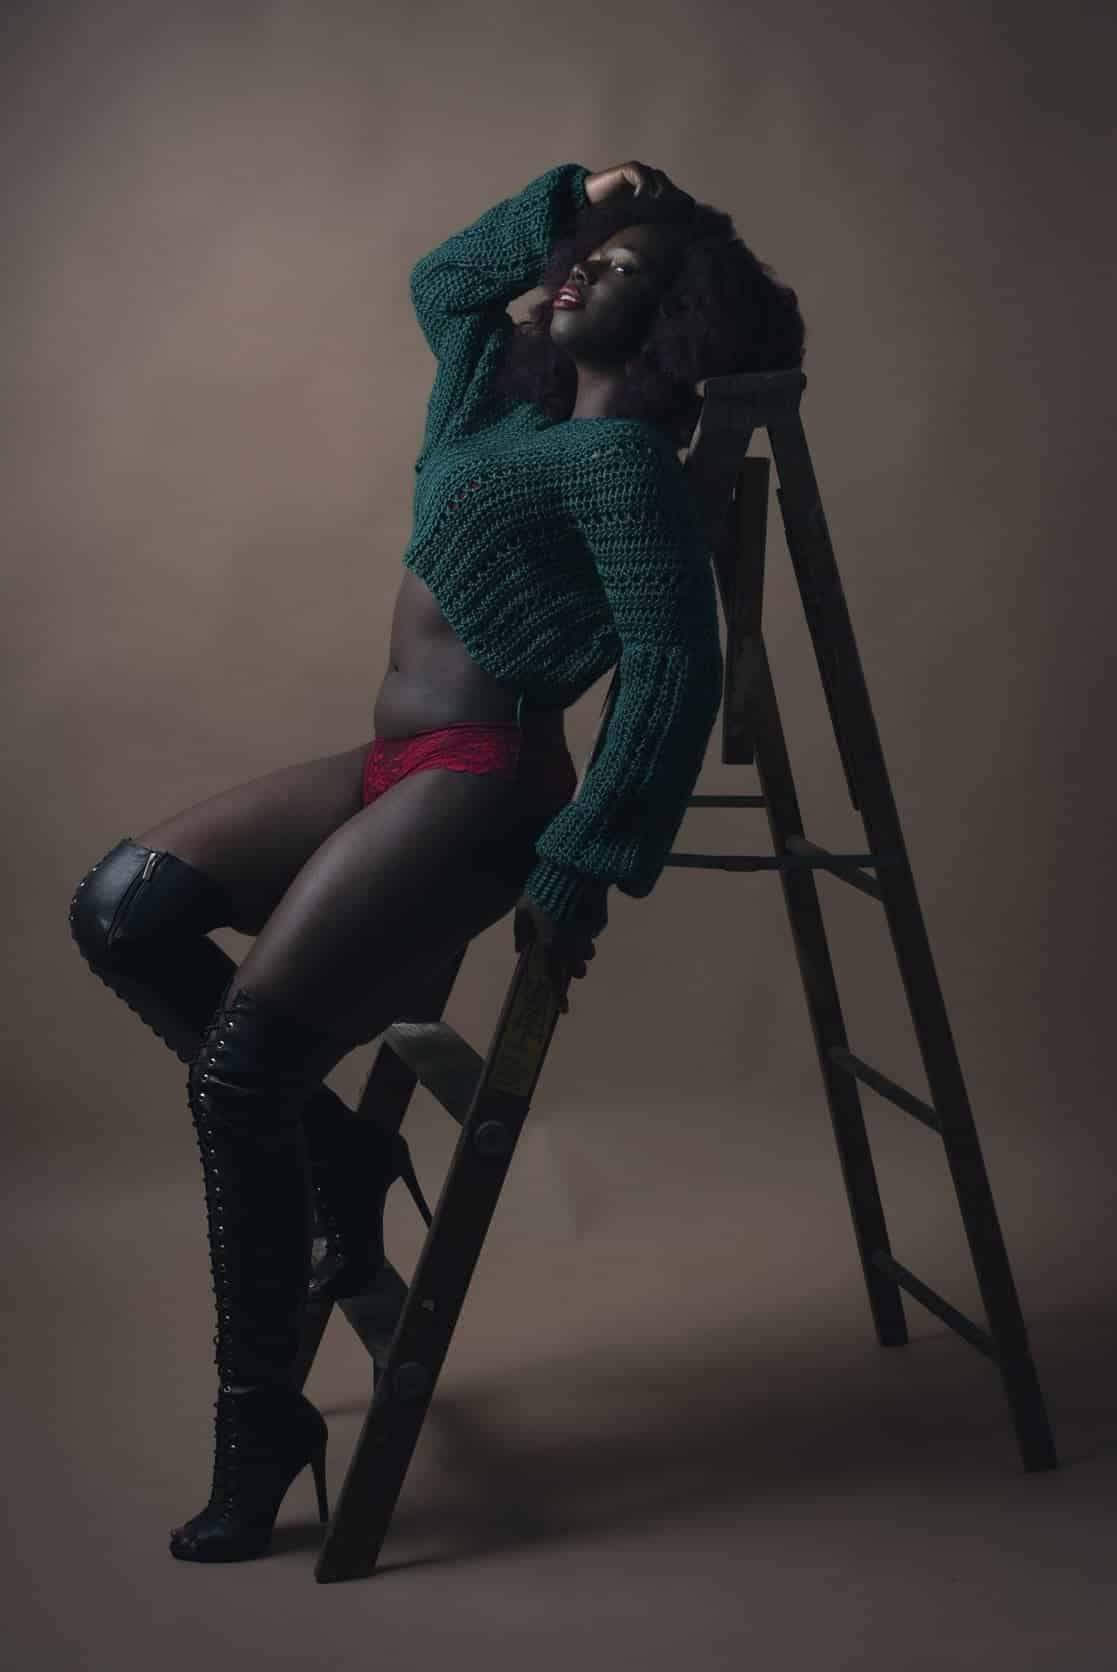 African American woman posing in a green sweater